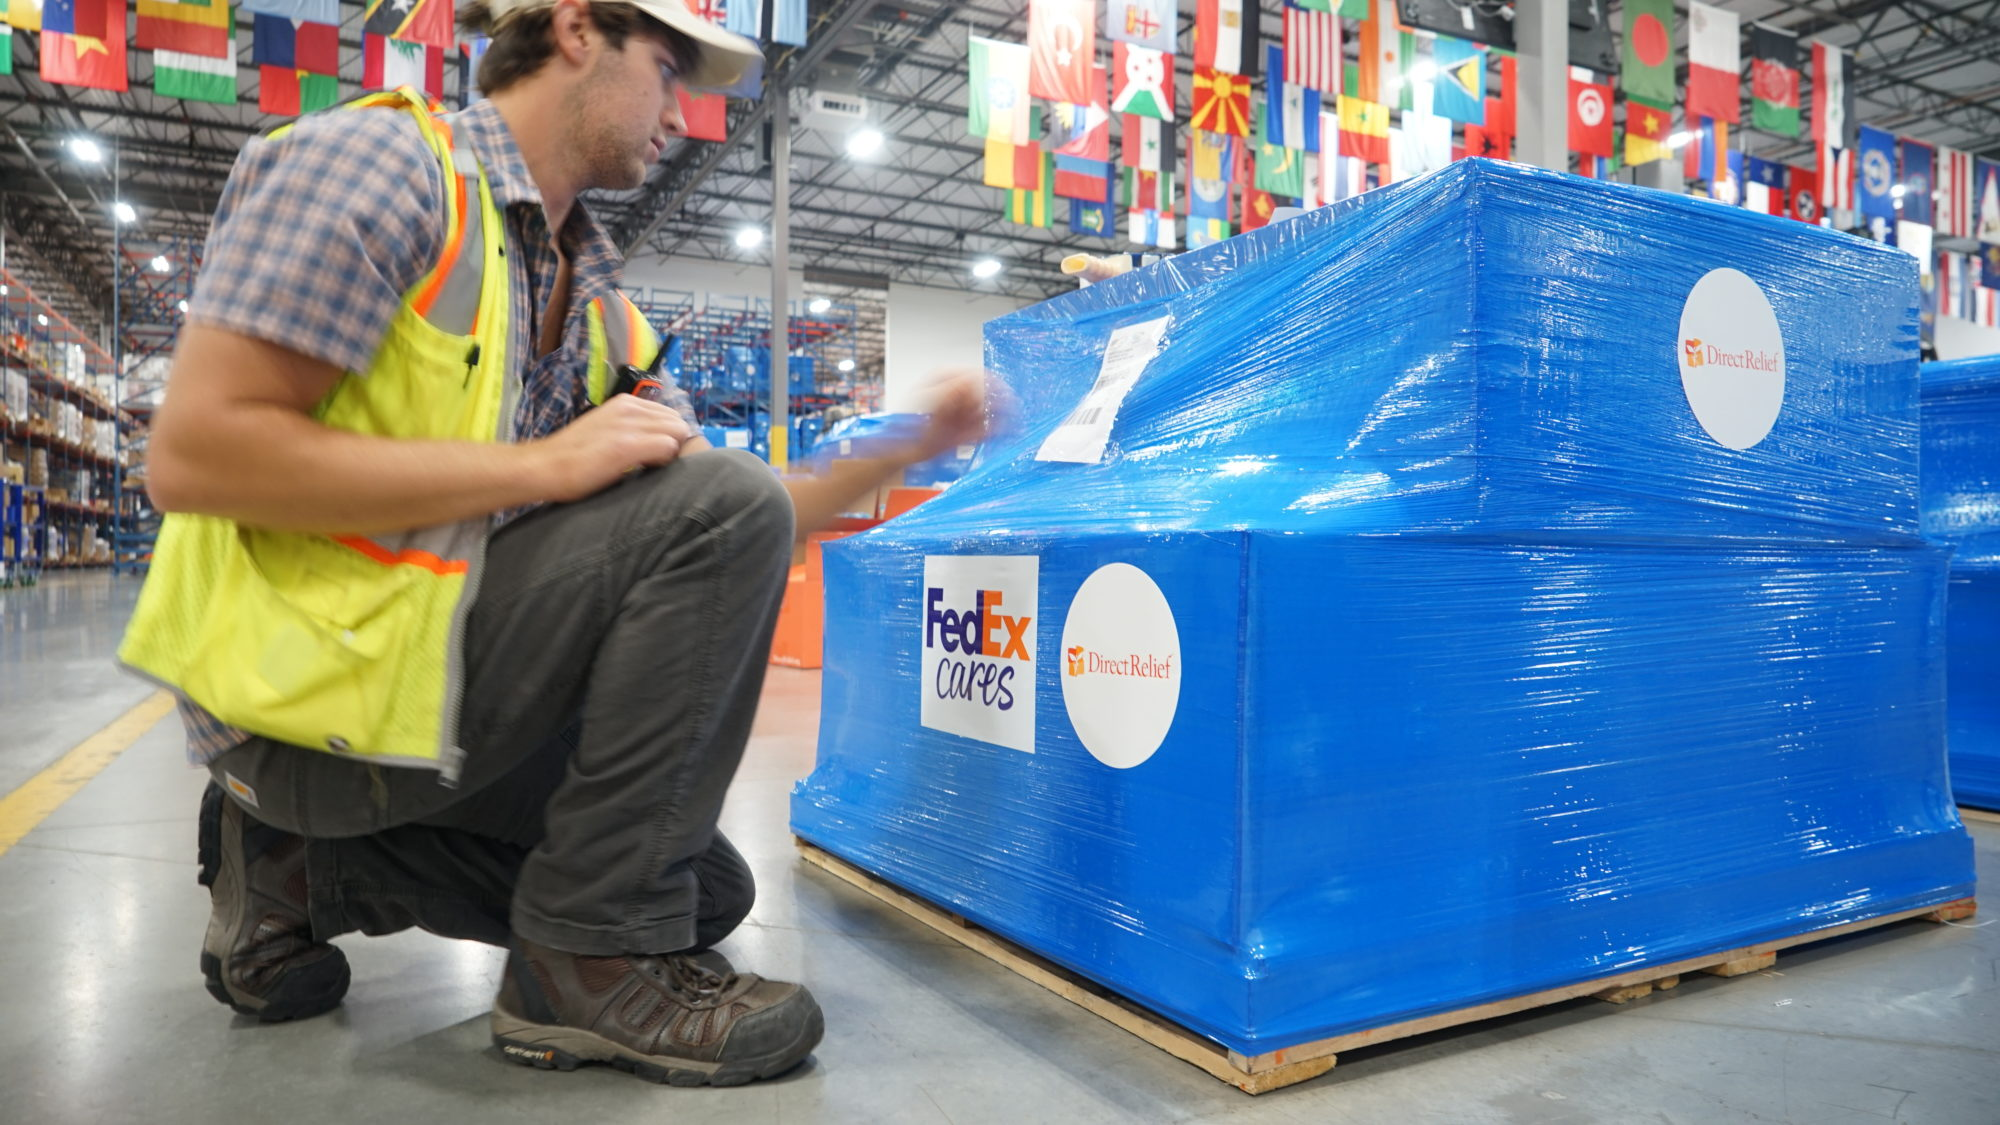 Medical aid for communities threatened by Tropical Storm Barry is prepared for delivery at Direct Relief's California warehouse. (Photo/Tony Morain)